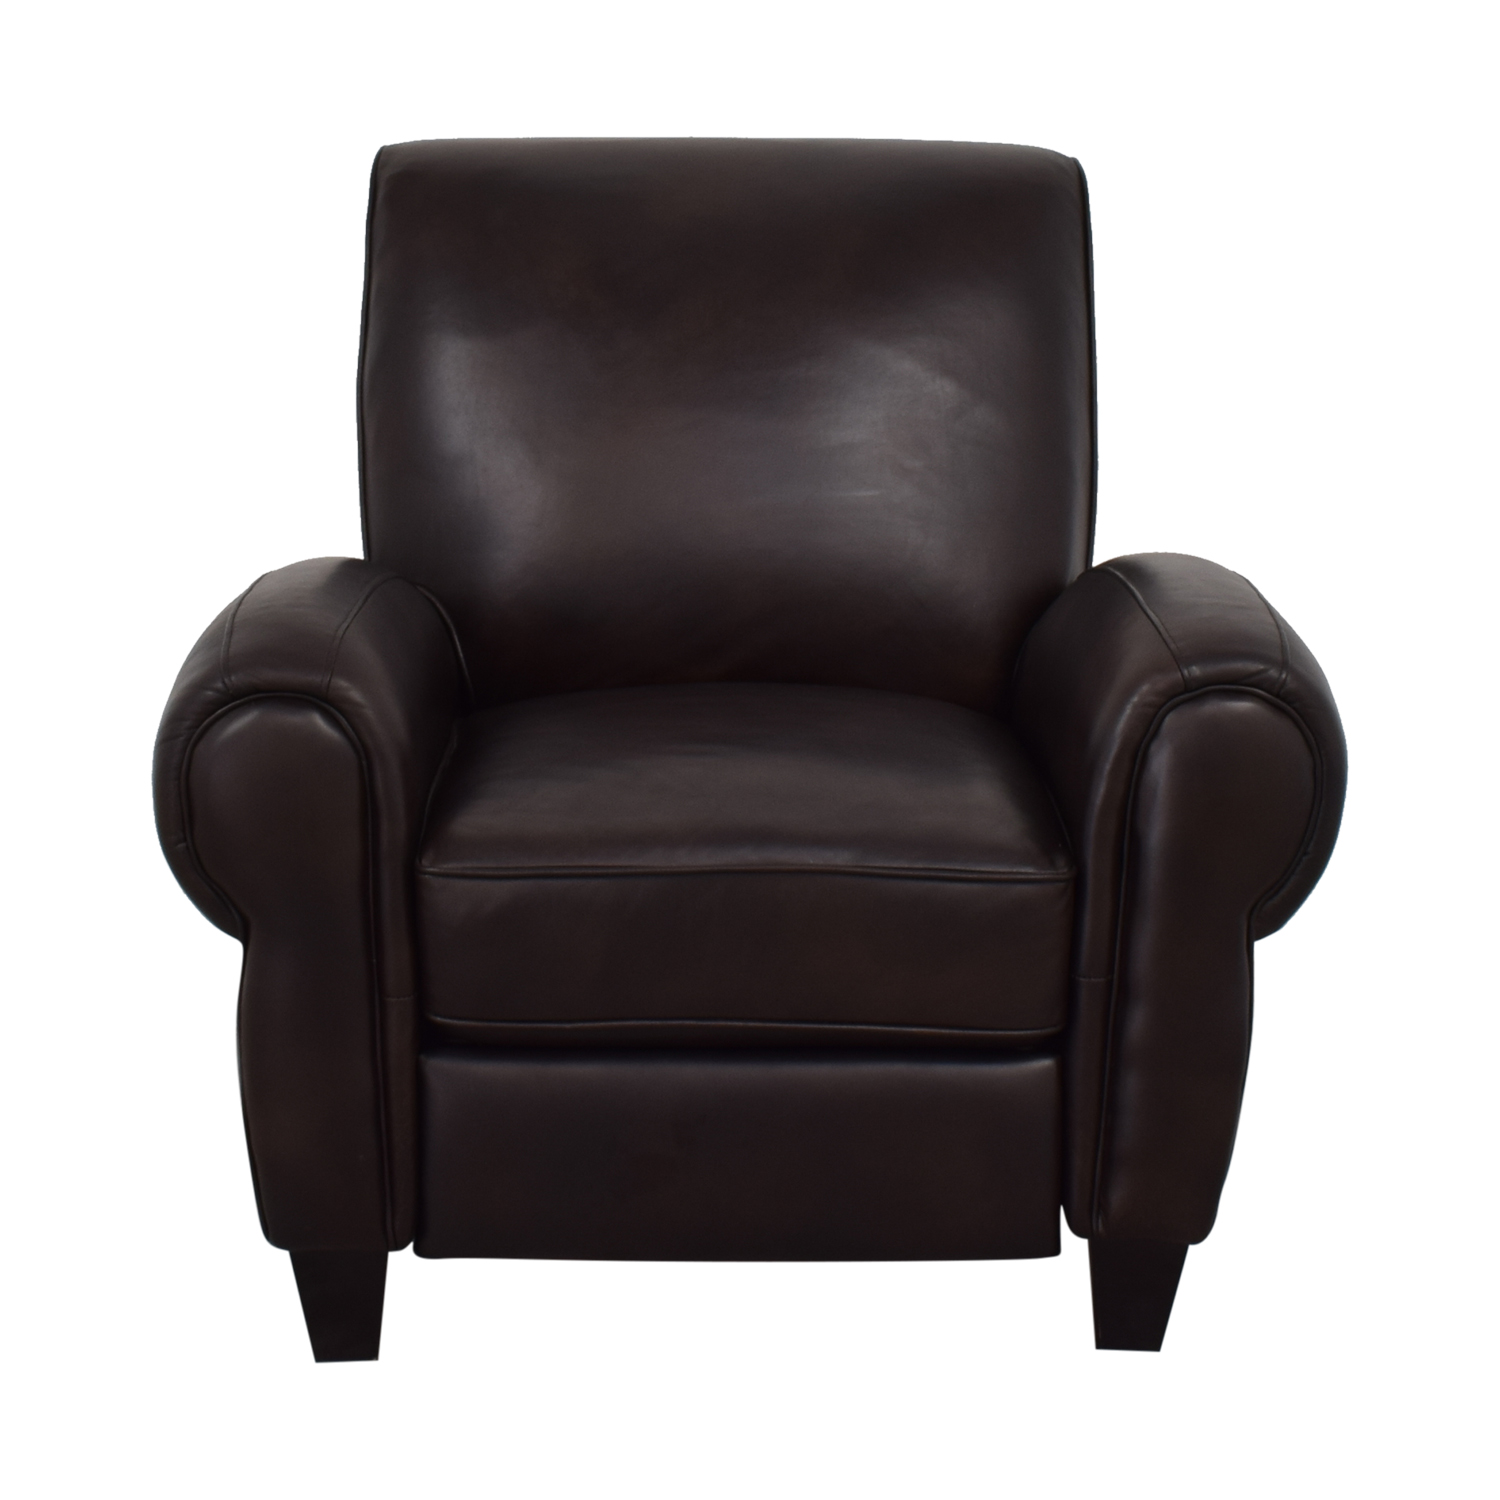 shop At Home Designs Ambassador Glider Recliner At Home Designs Recliners